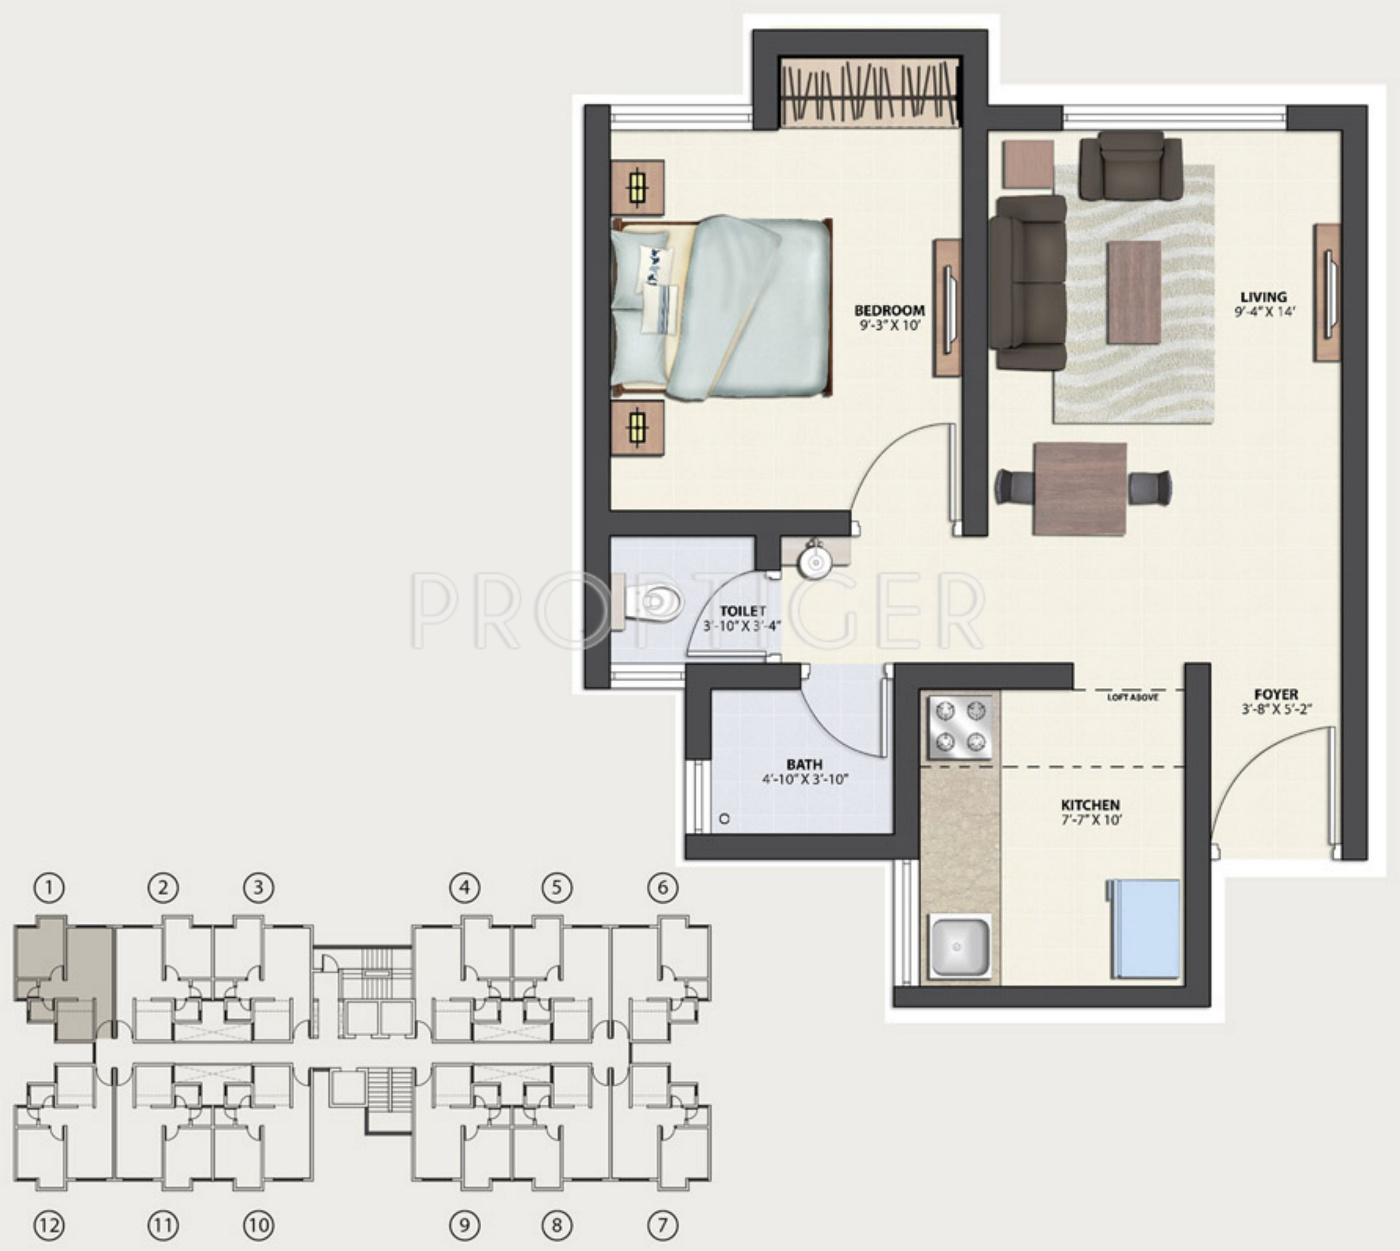 570 sq ft 1 bhk 2t apartment for sale in tata housing for 1077 marinaside crescent floor plan